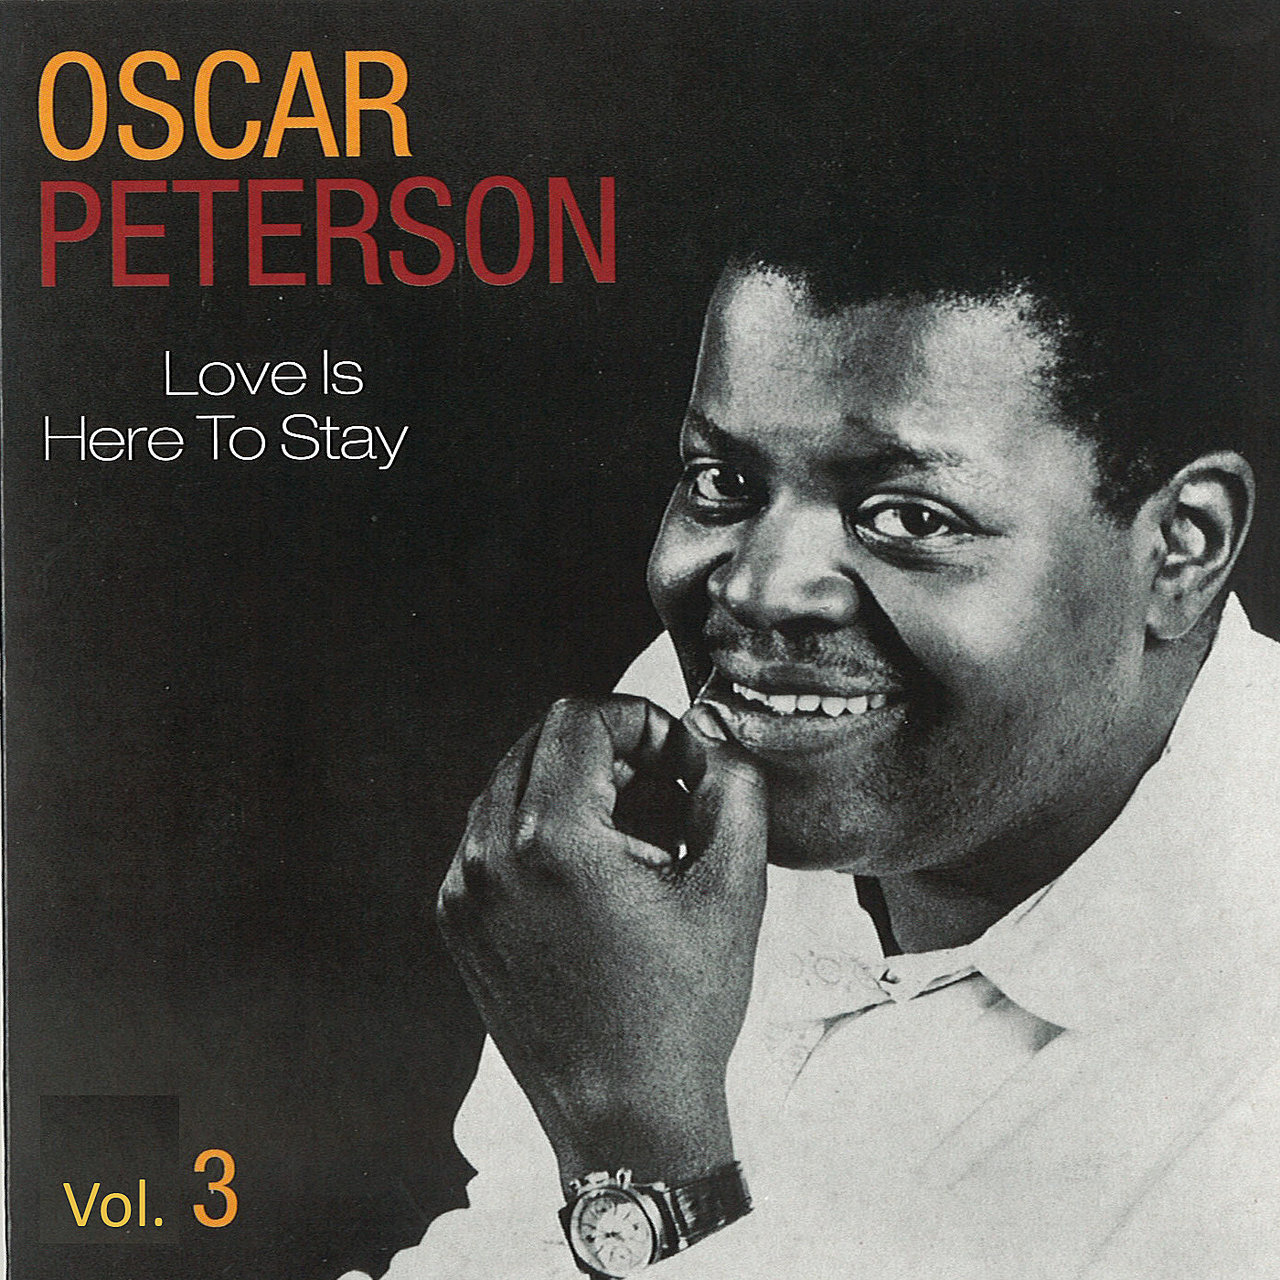 Oscar Peterson Vol. 3